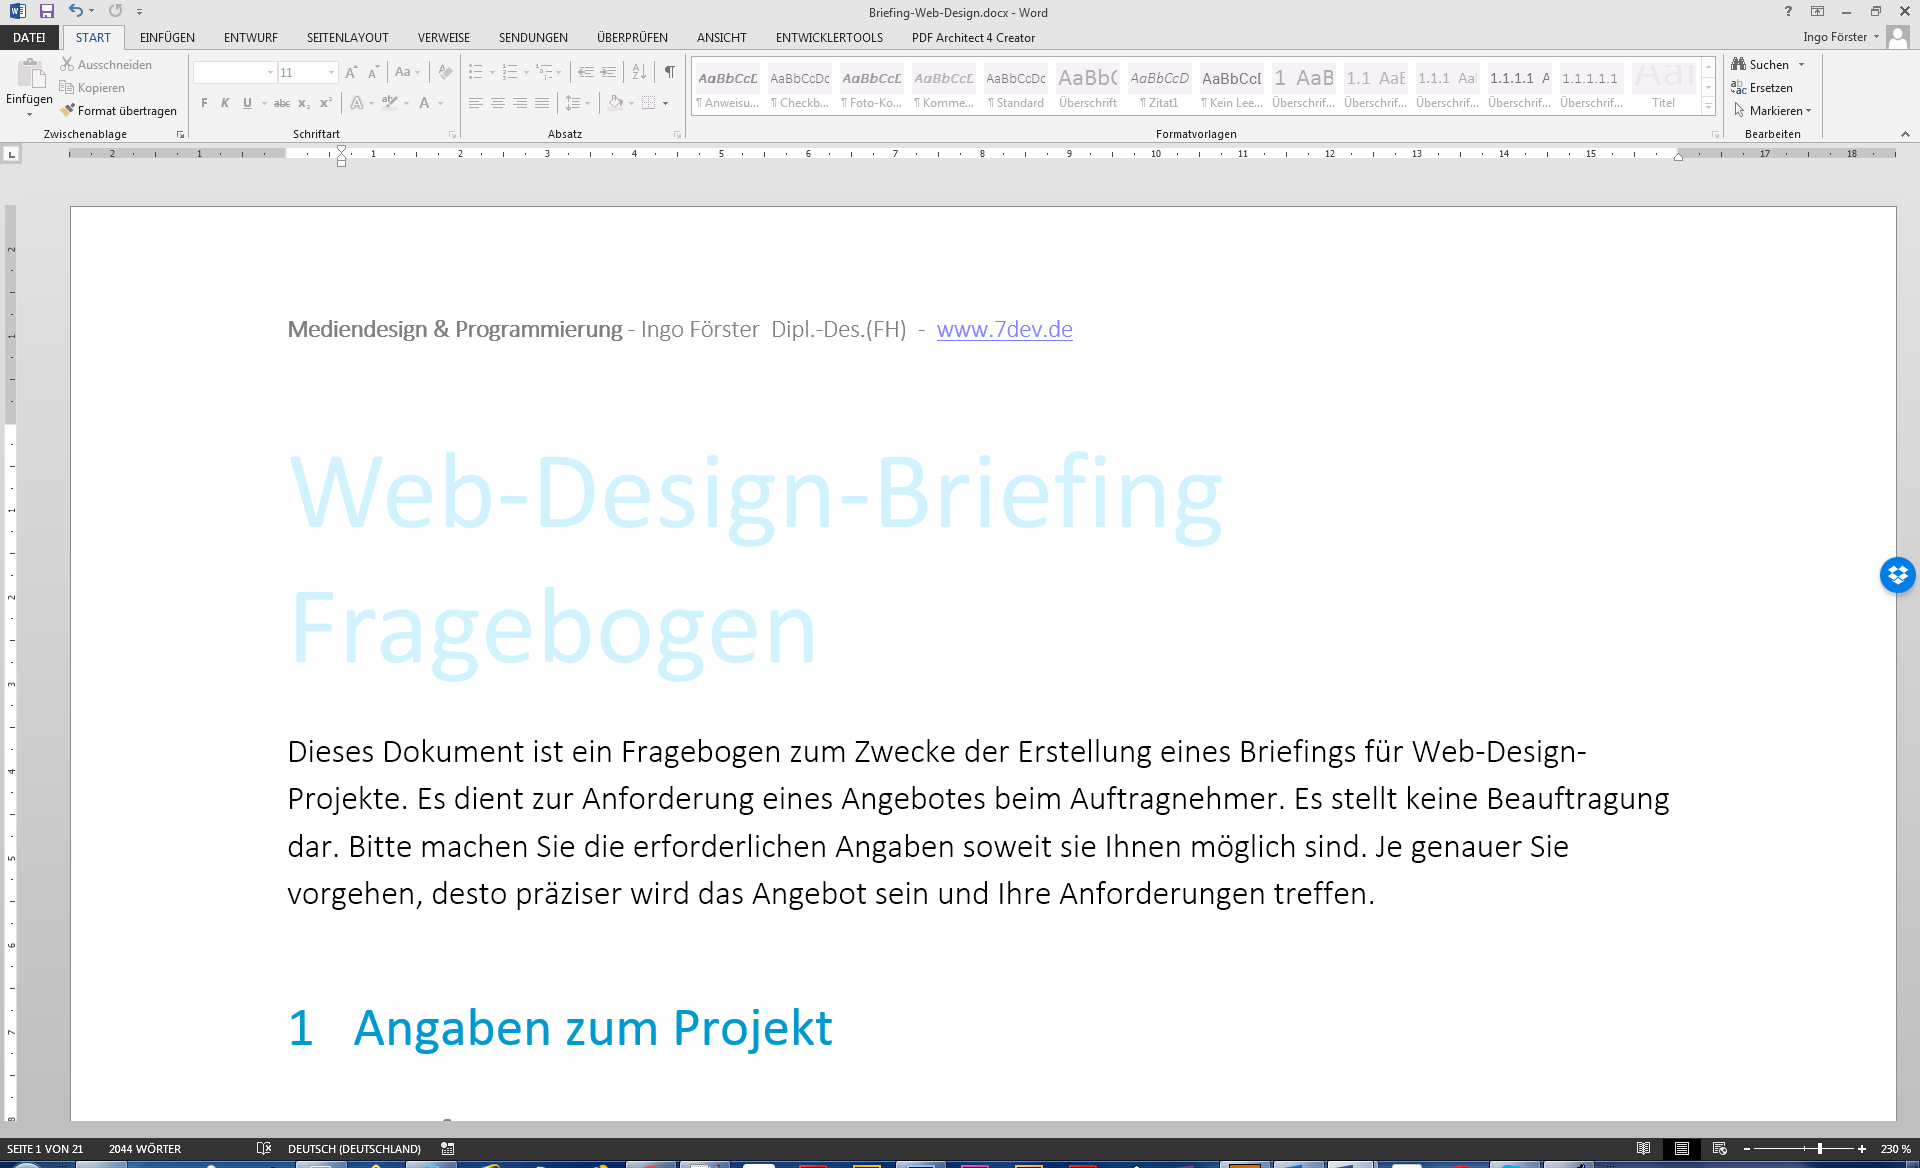 web design briefing word vorlage mit multiple choice uid